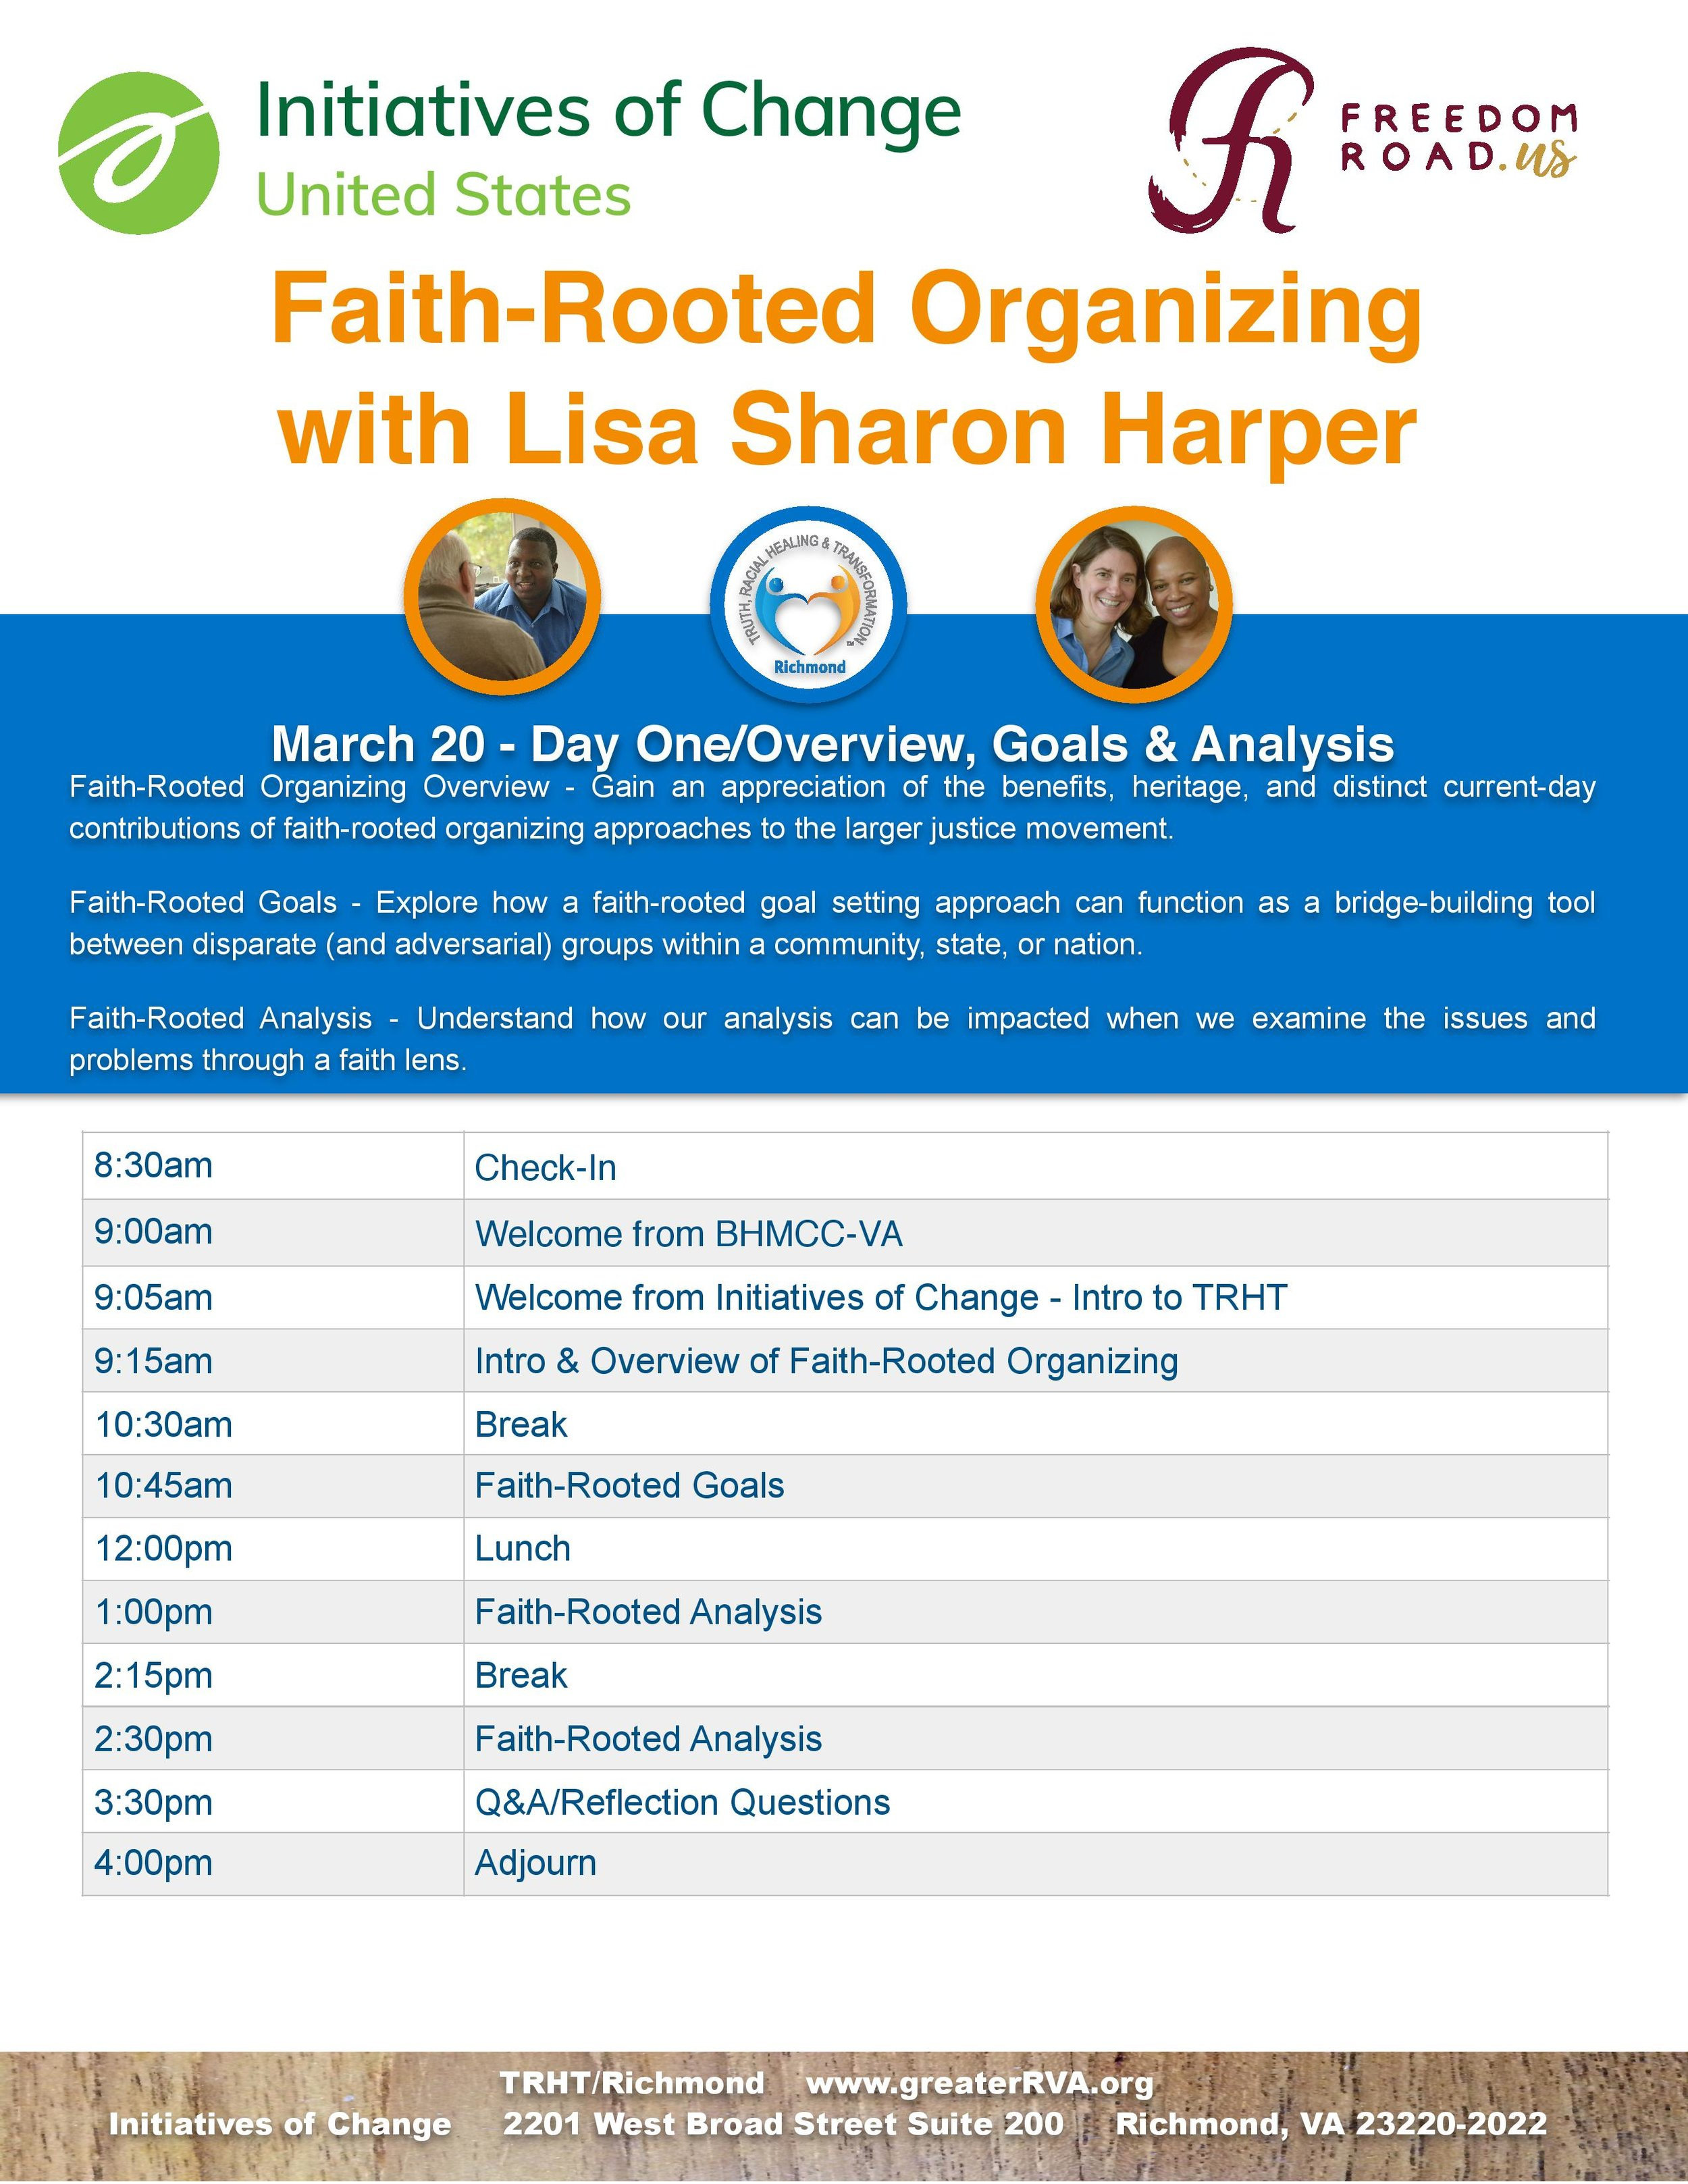 FRO Lisa Sharon Harper March 2018 Agenda with address -page-001.jpg